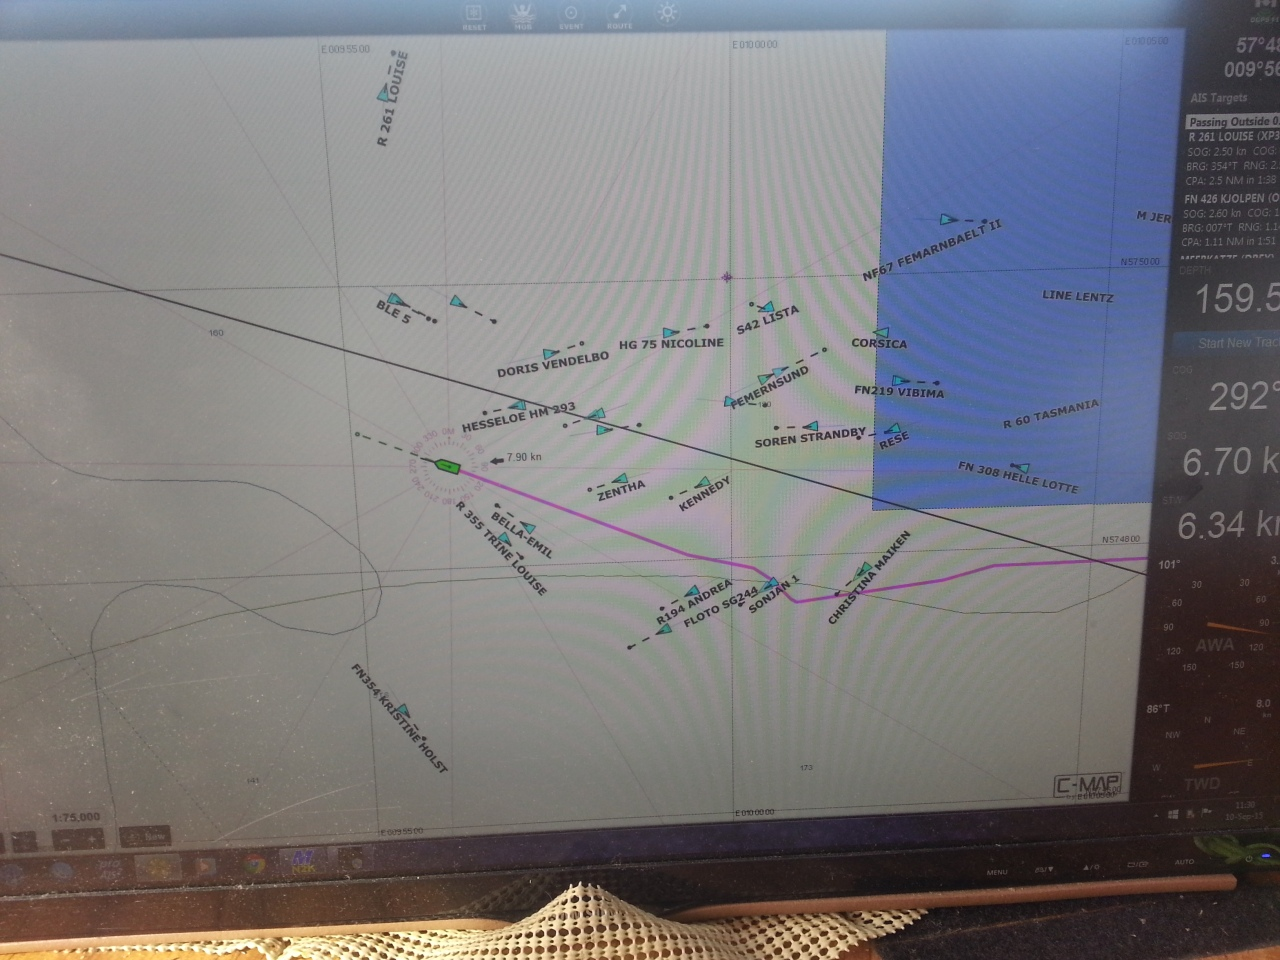 The AIS depiction in Coastal Explorer of the same fishing fleet